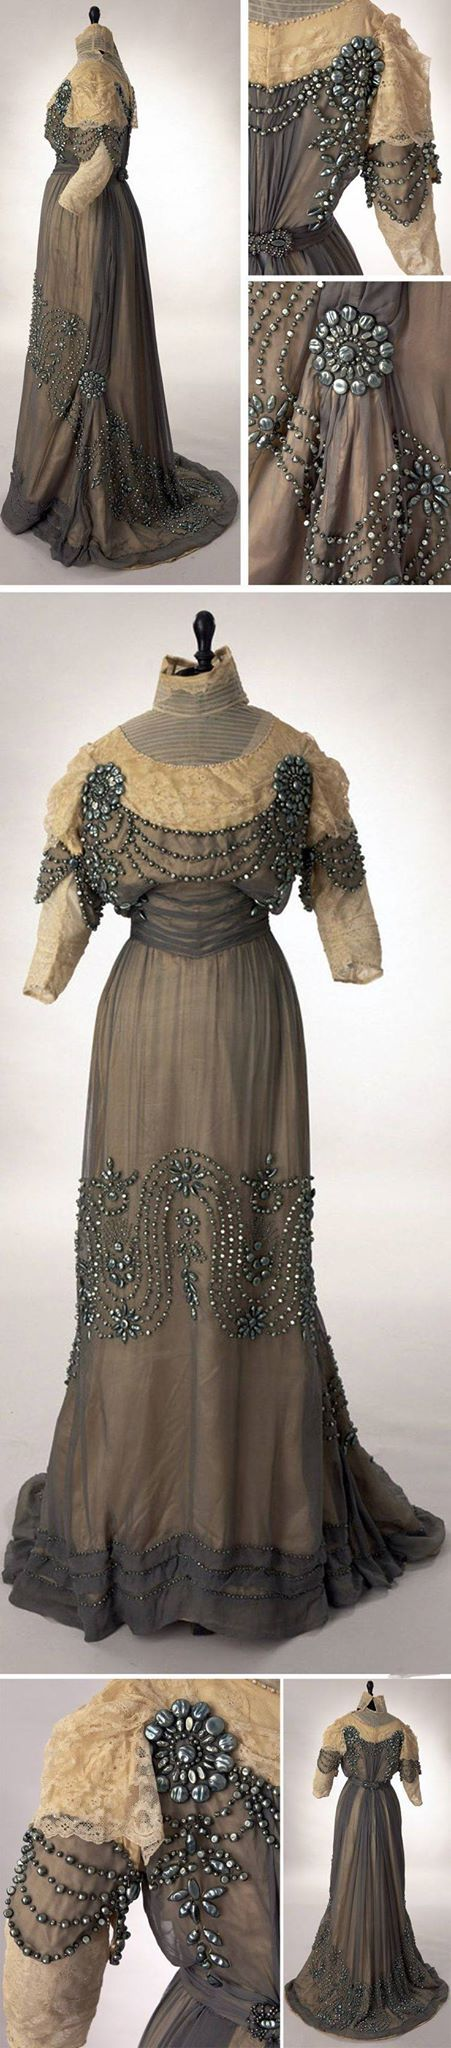 Reception gown, Mme. Renfrew Wood, New York, 1912. Gray silk chiffon over ivory China silk trimmed w/hand-painted metal shells made to look like freshwater pearls. Upper bodice & sleeves are ivory lace over cream silk. Stand collar down through throat is pleated silk tulle set with appliquéd lace. Satin-covered discs accent neckline between chiffon & tulle-- also at sleeve hem. Chiffon on bodice is pleated just above waistline to give cummerbund effect. Slight train.